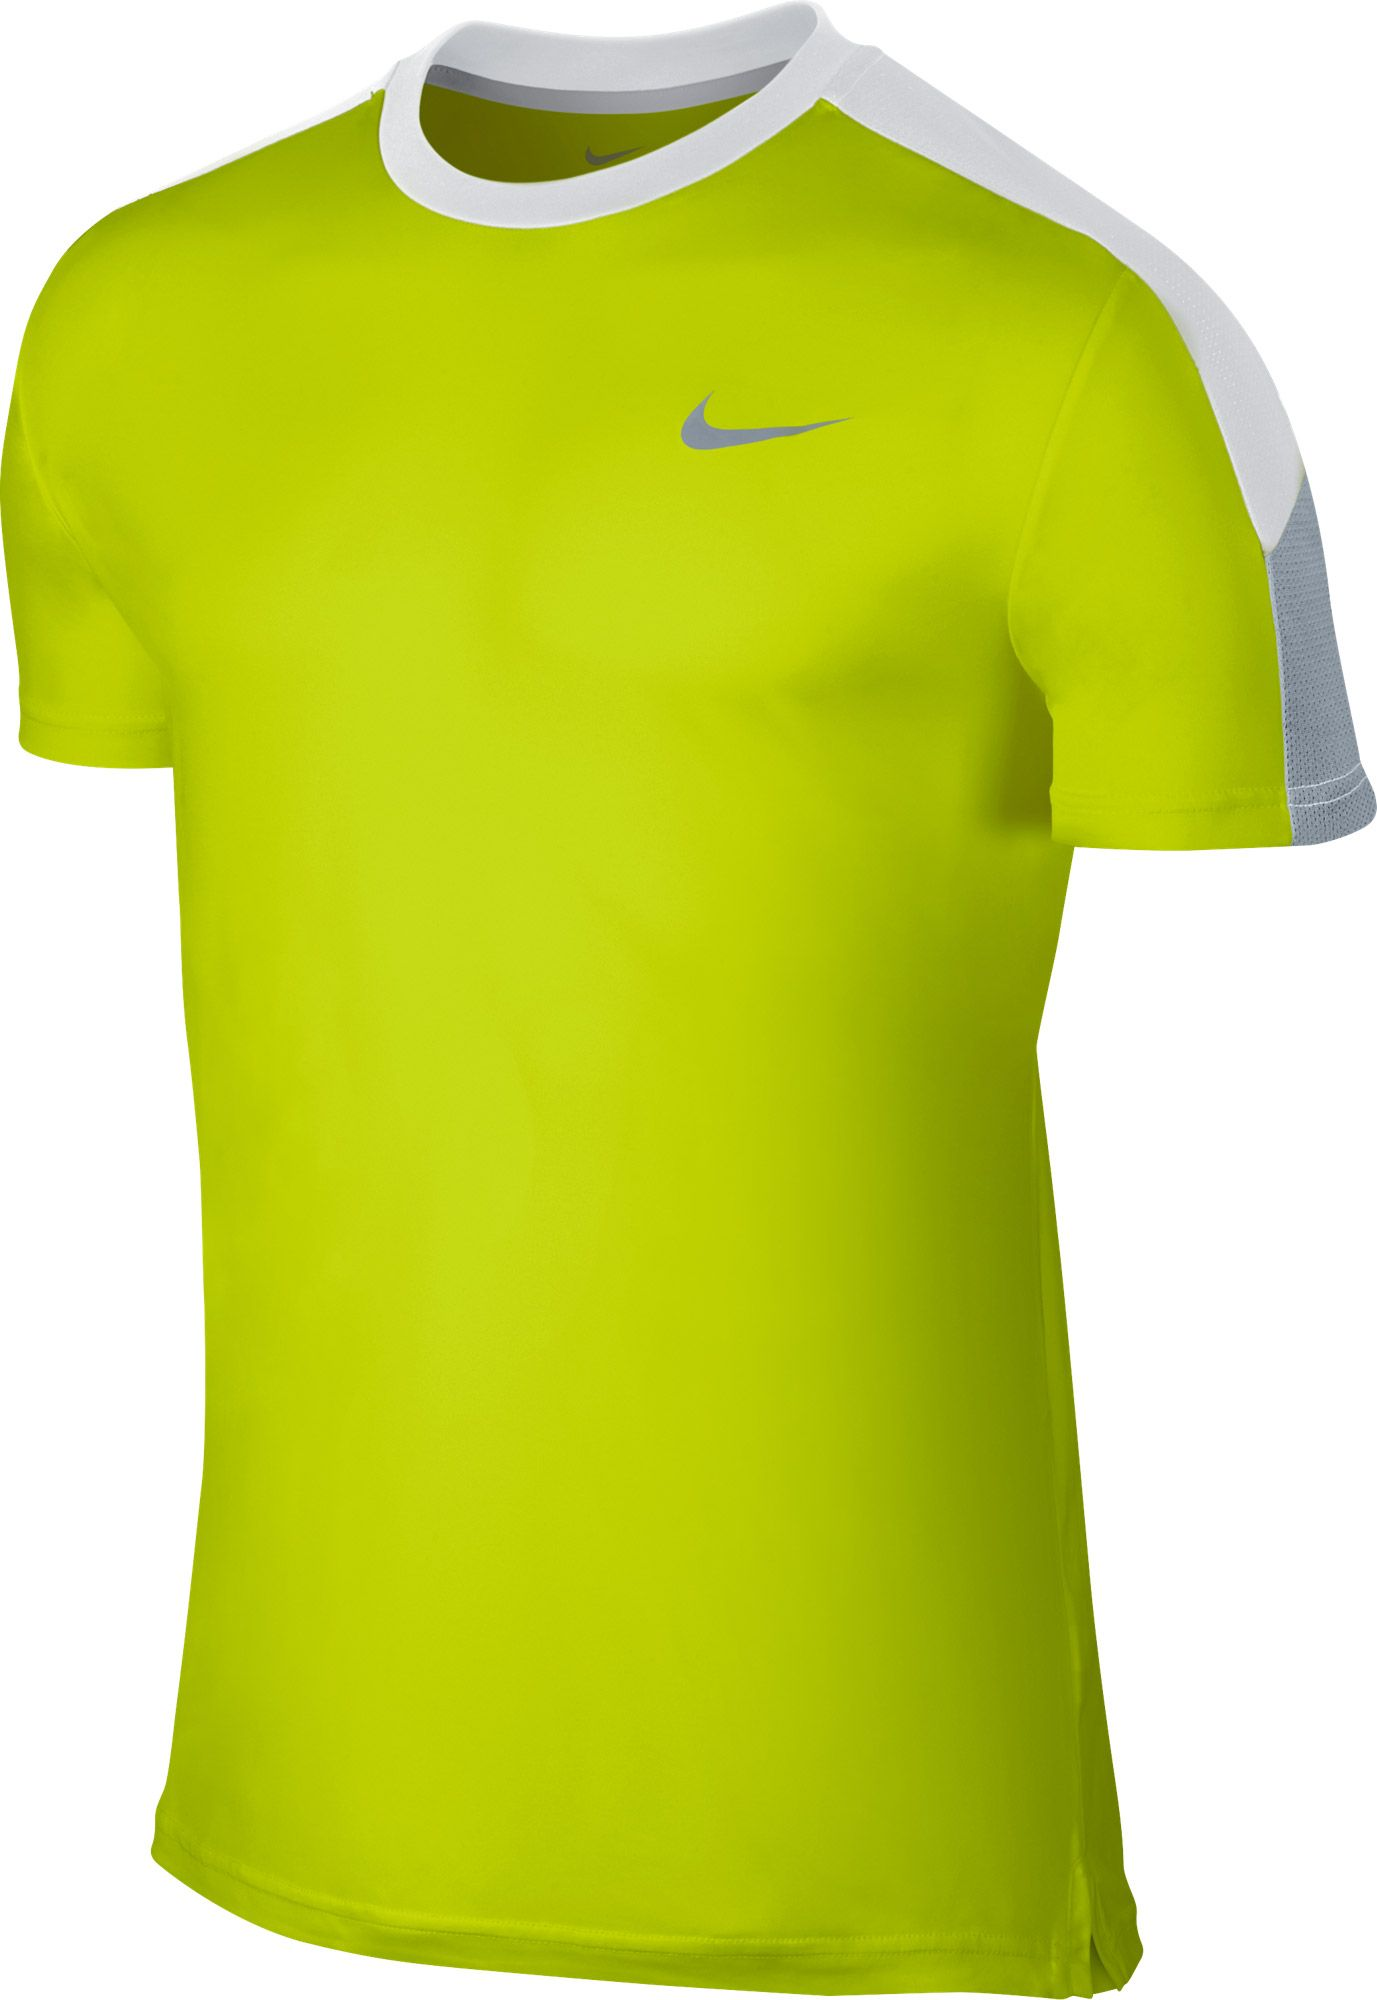 Shirt Tennis Cotswold Nike Hire Mens T xY4fO1